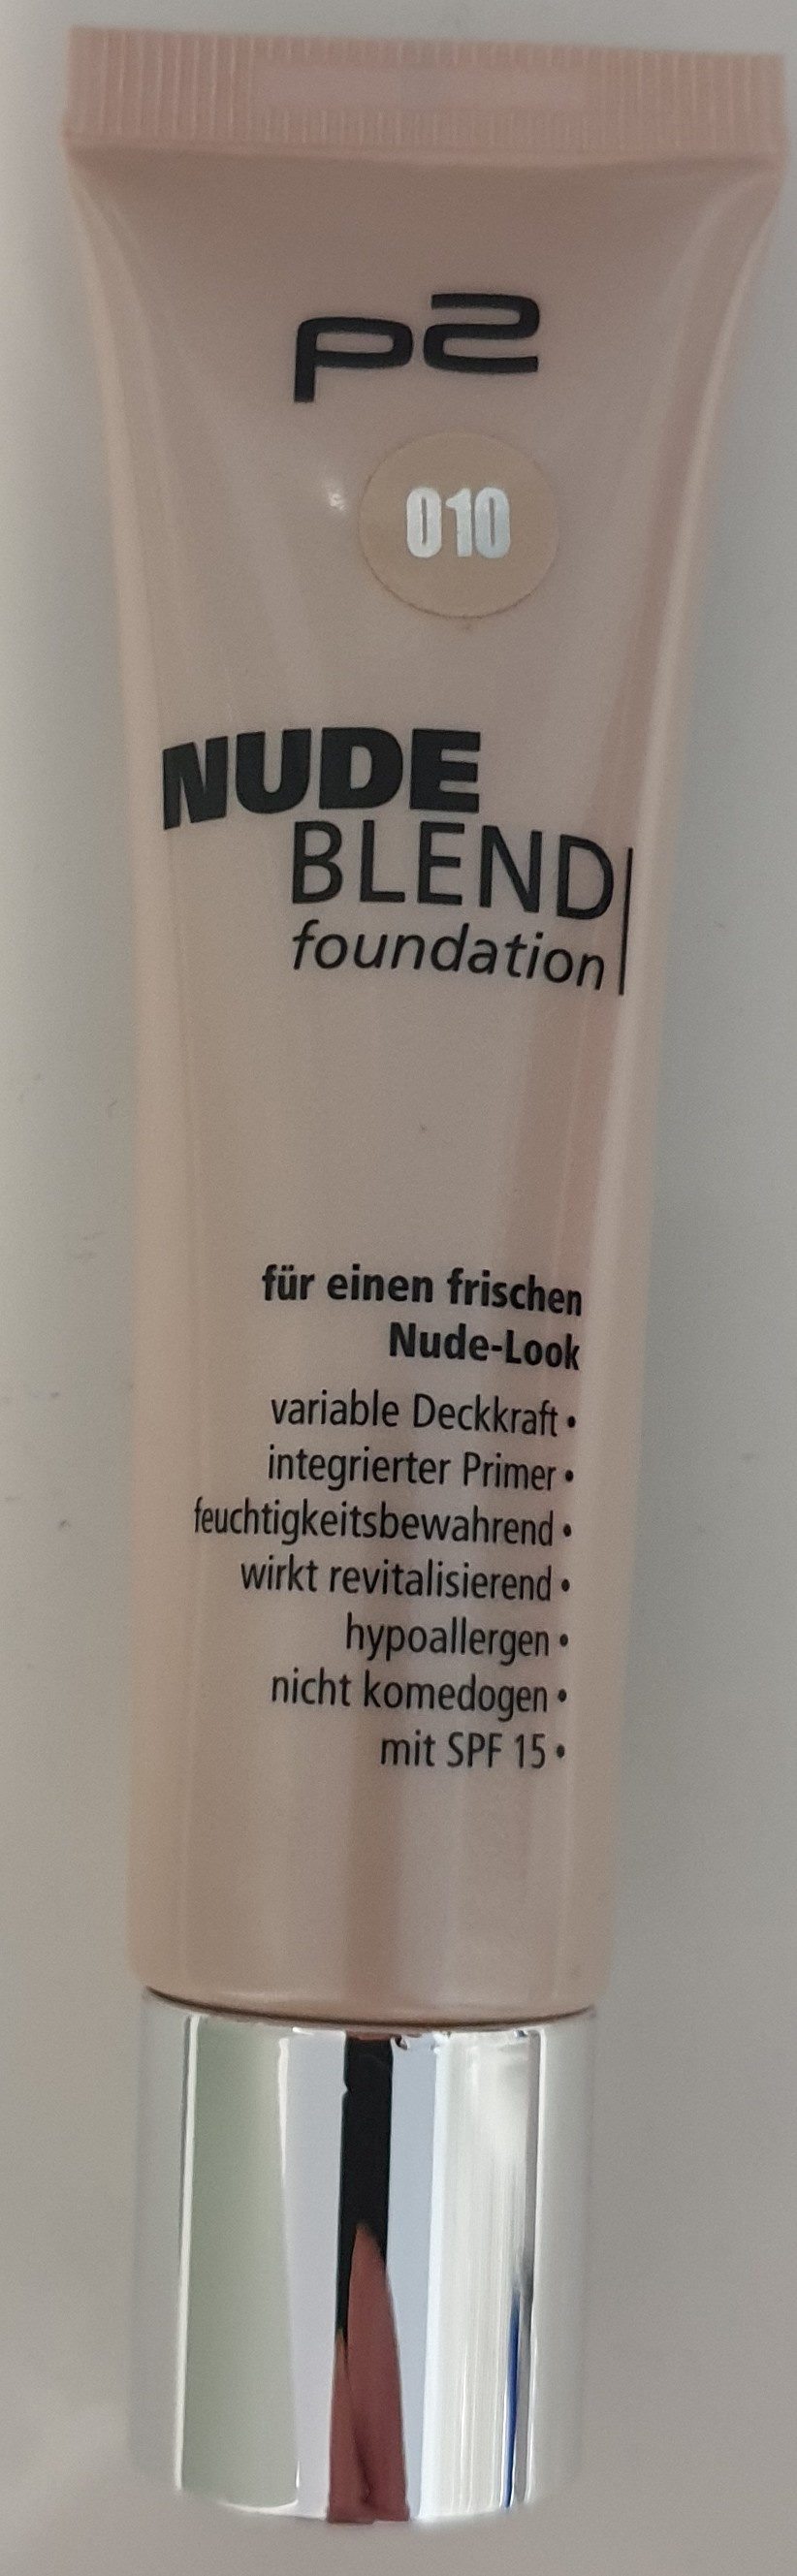 Nude Blend Foundation (010) - Product